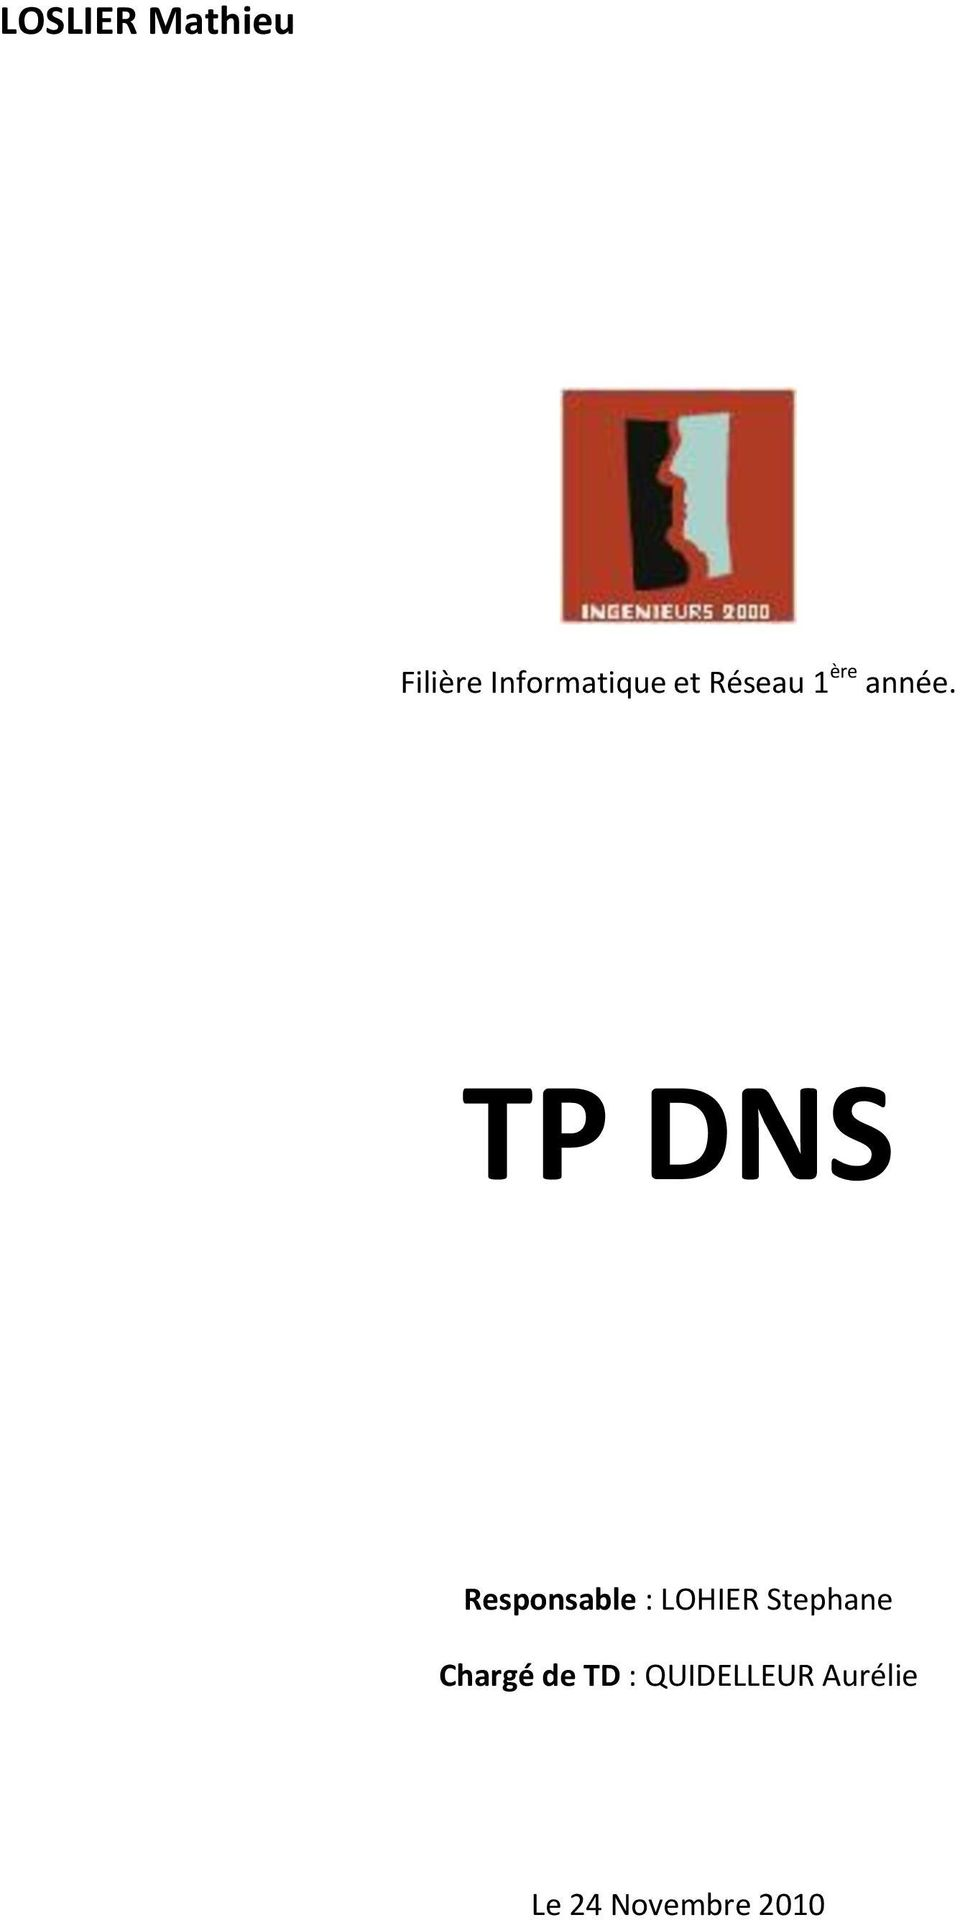 TP DNS Responsable : LOHIER Stephane